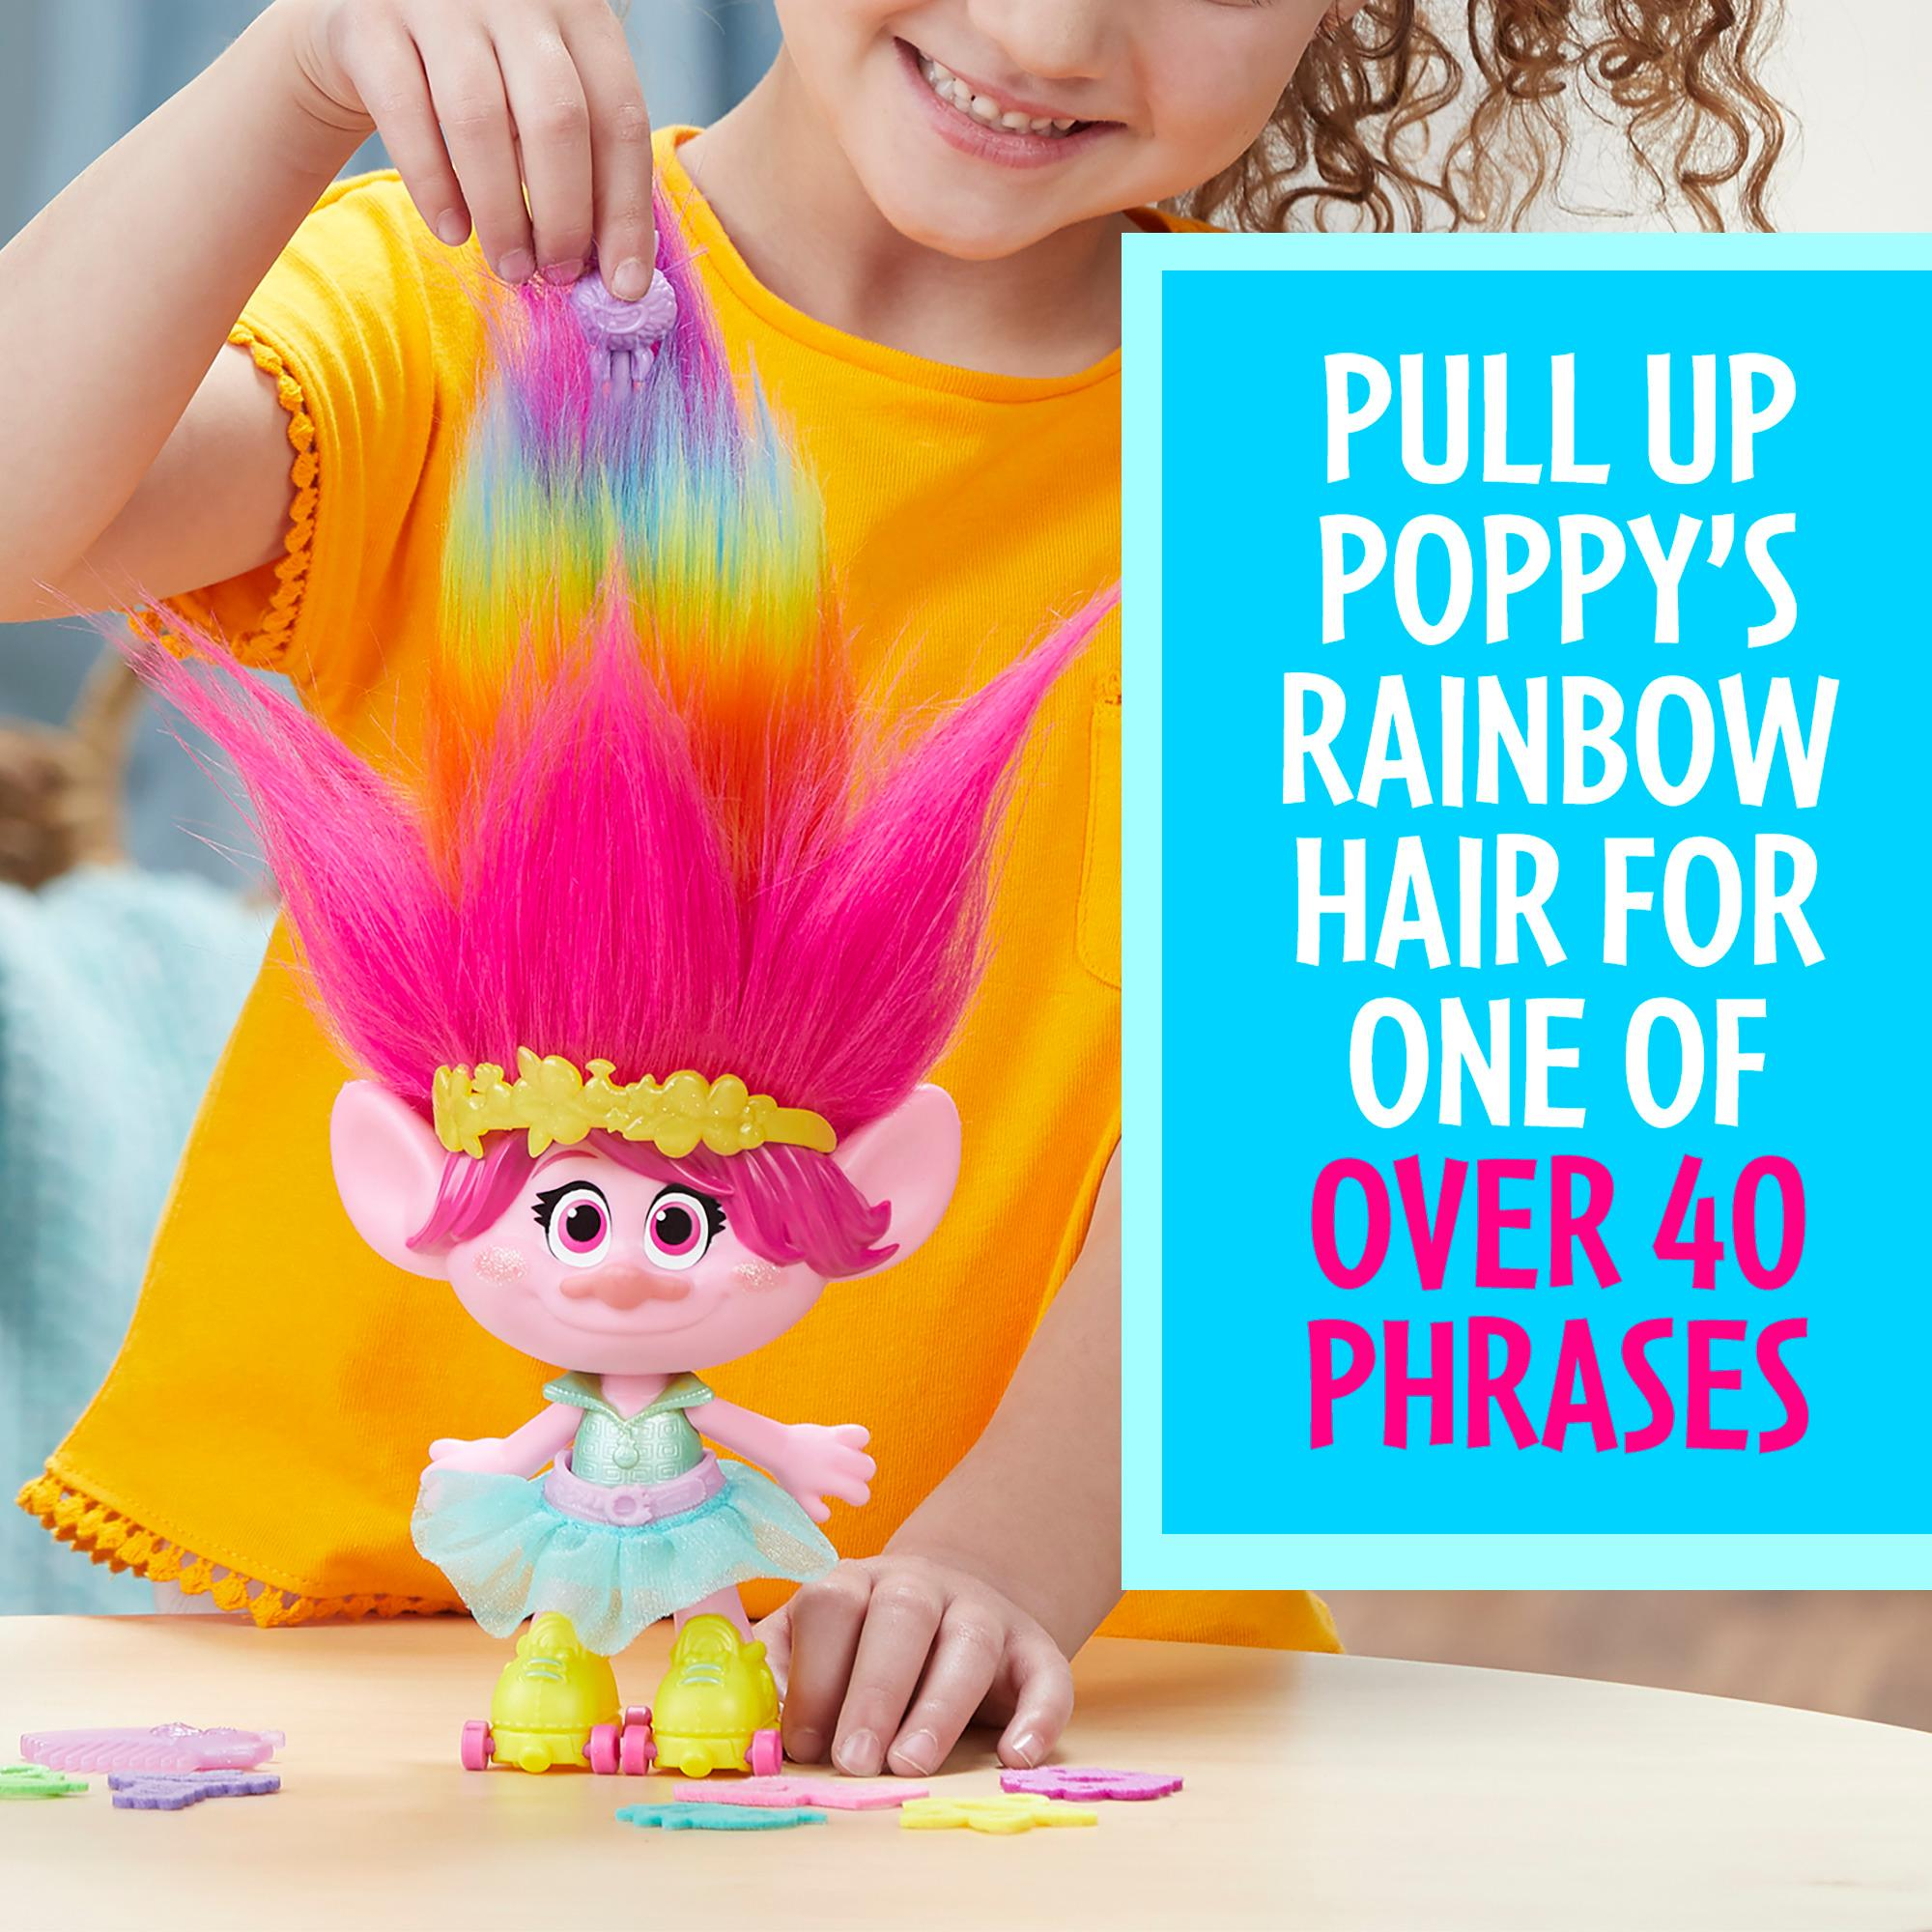 DreamWorks Trolls Party Hair Poppy